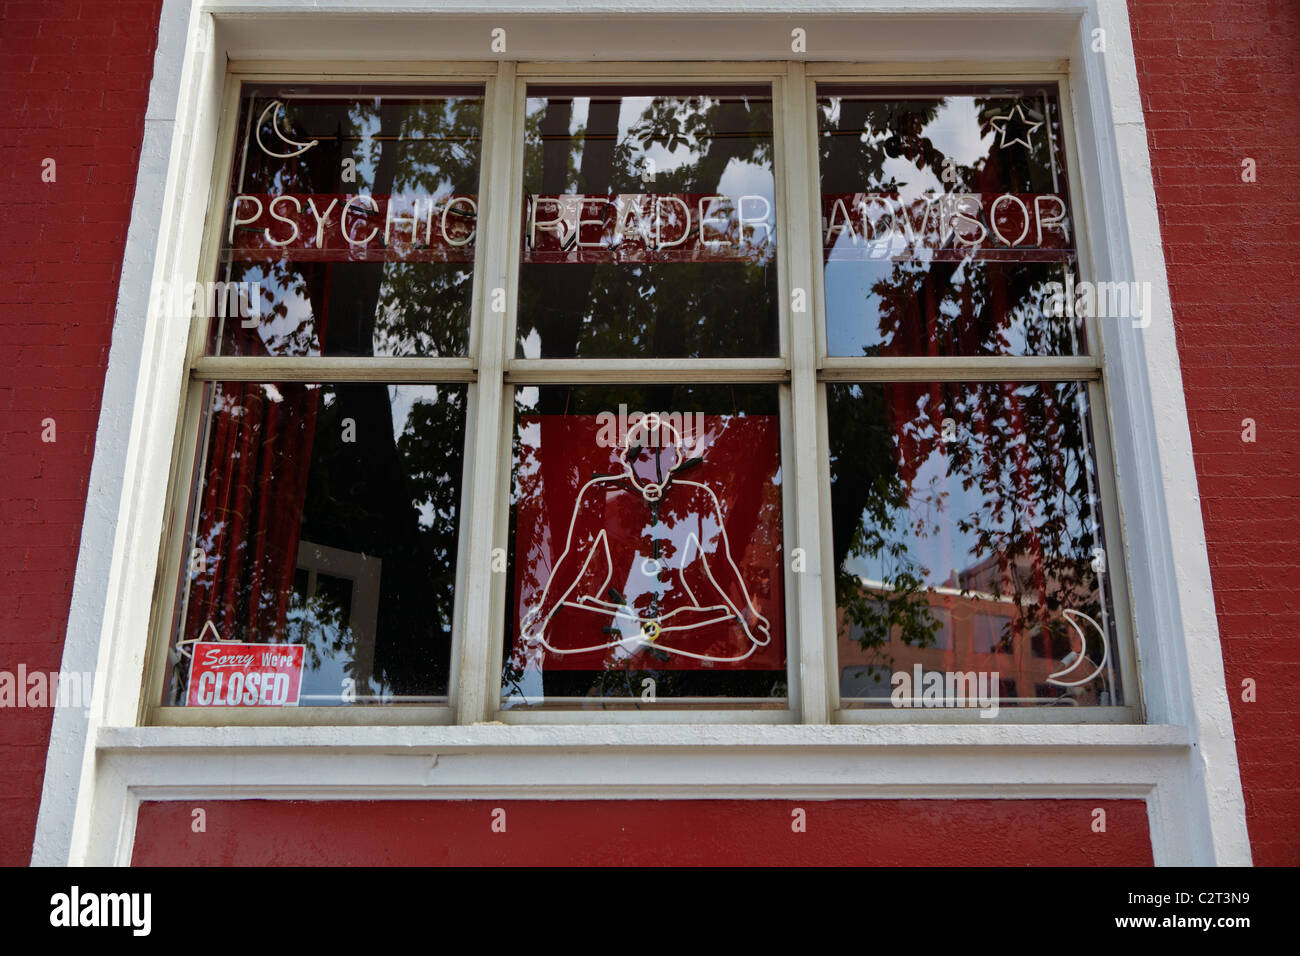 The window of a Psychic Reader Advisor shop in Washington, DC. - Stock Image